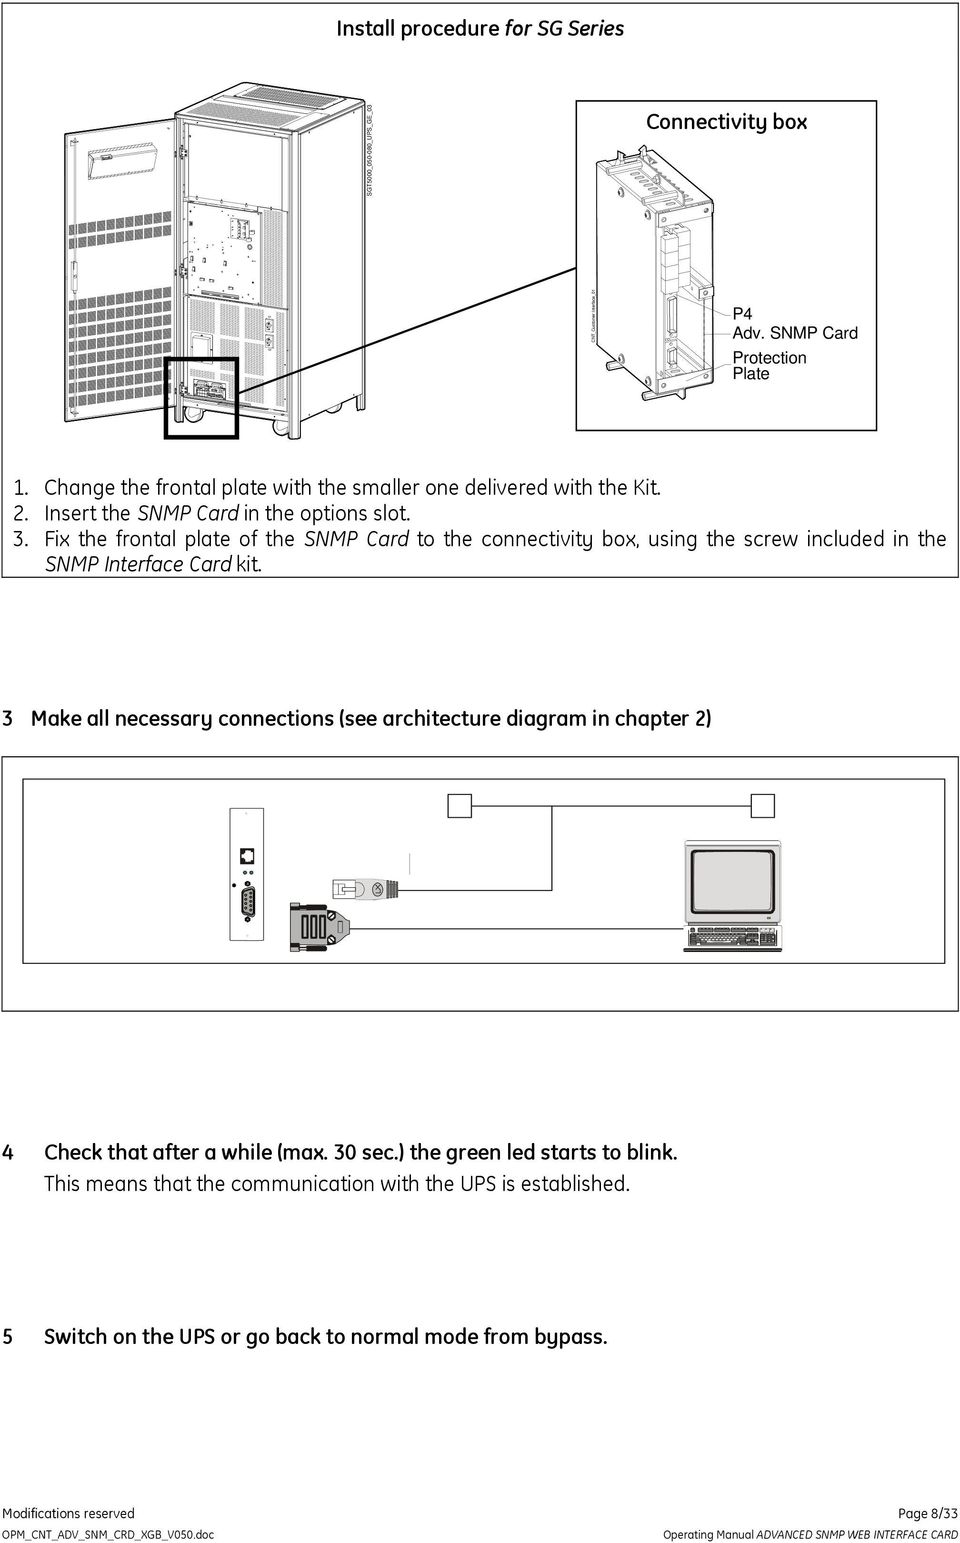 Advanced Snmp Web Interface Card Pdf Wiring Diagram Fix The Frontal Plate Of To Connectivity Box Using Screw